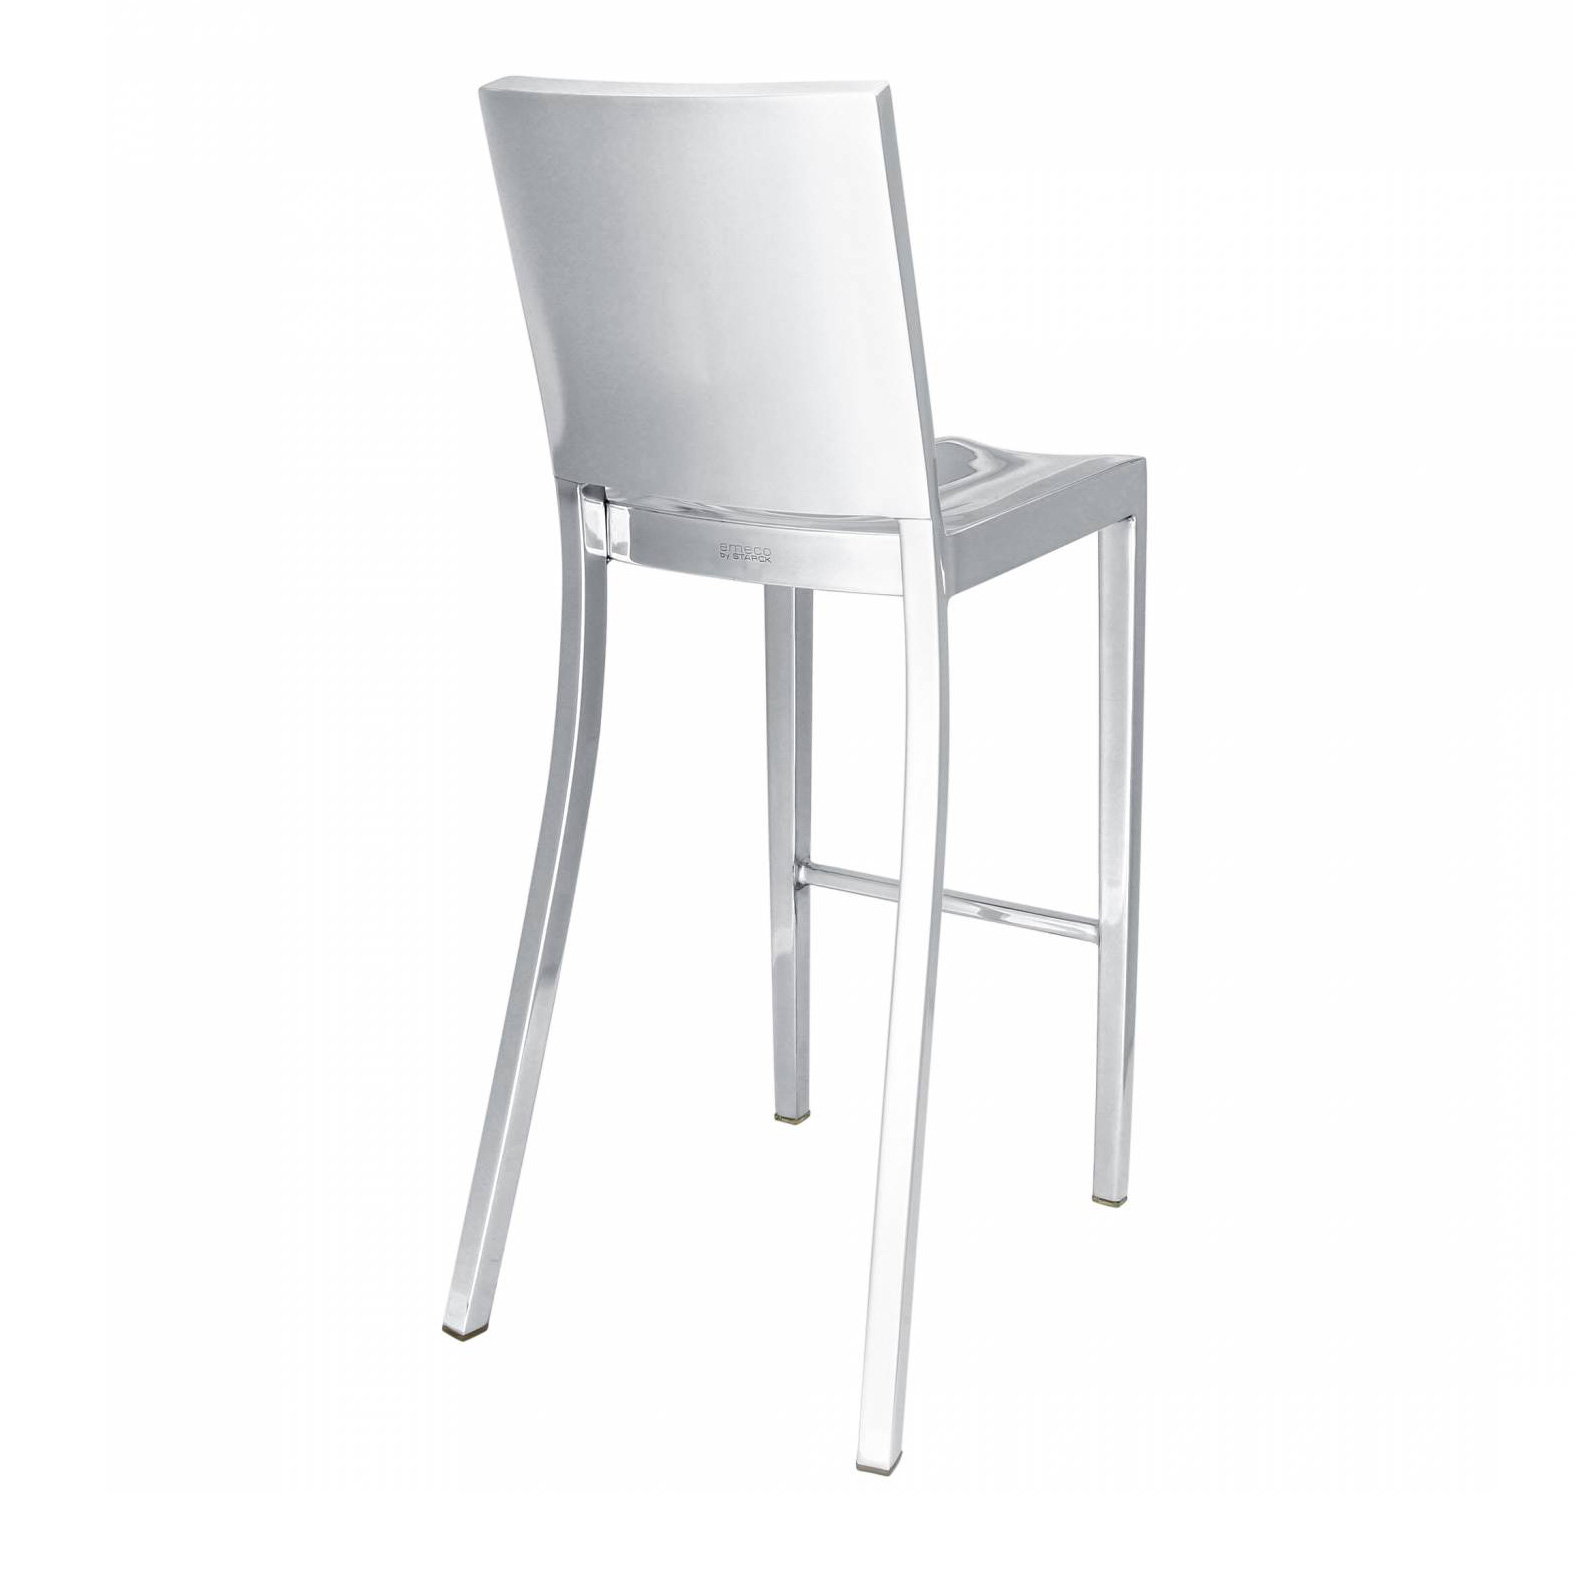 Awe Inspiring Emeco Hudson Bar Stool Aluminium Polished By Philippe Starck Squirreltailoven Fun Painted Chair Ideas Images Squirreltailovenorg